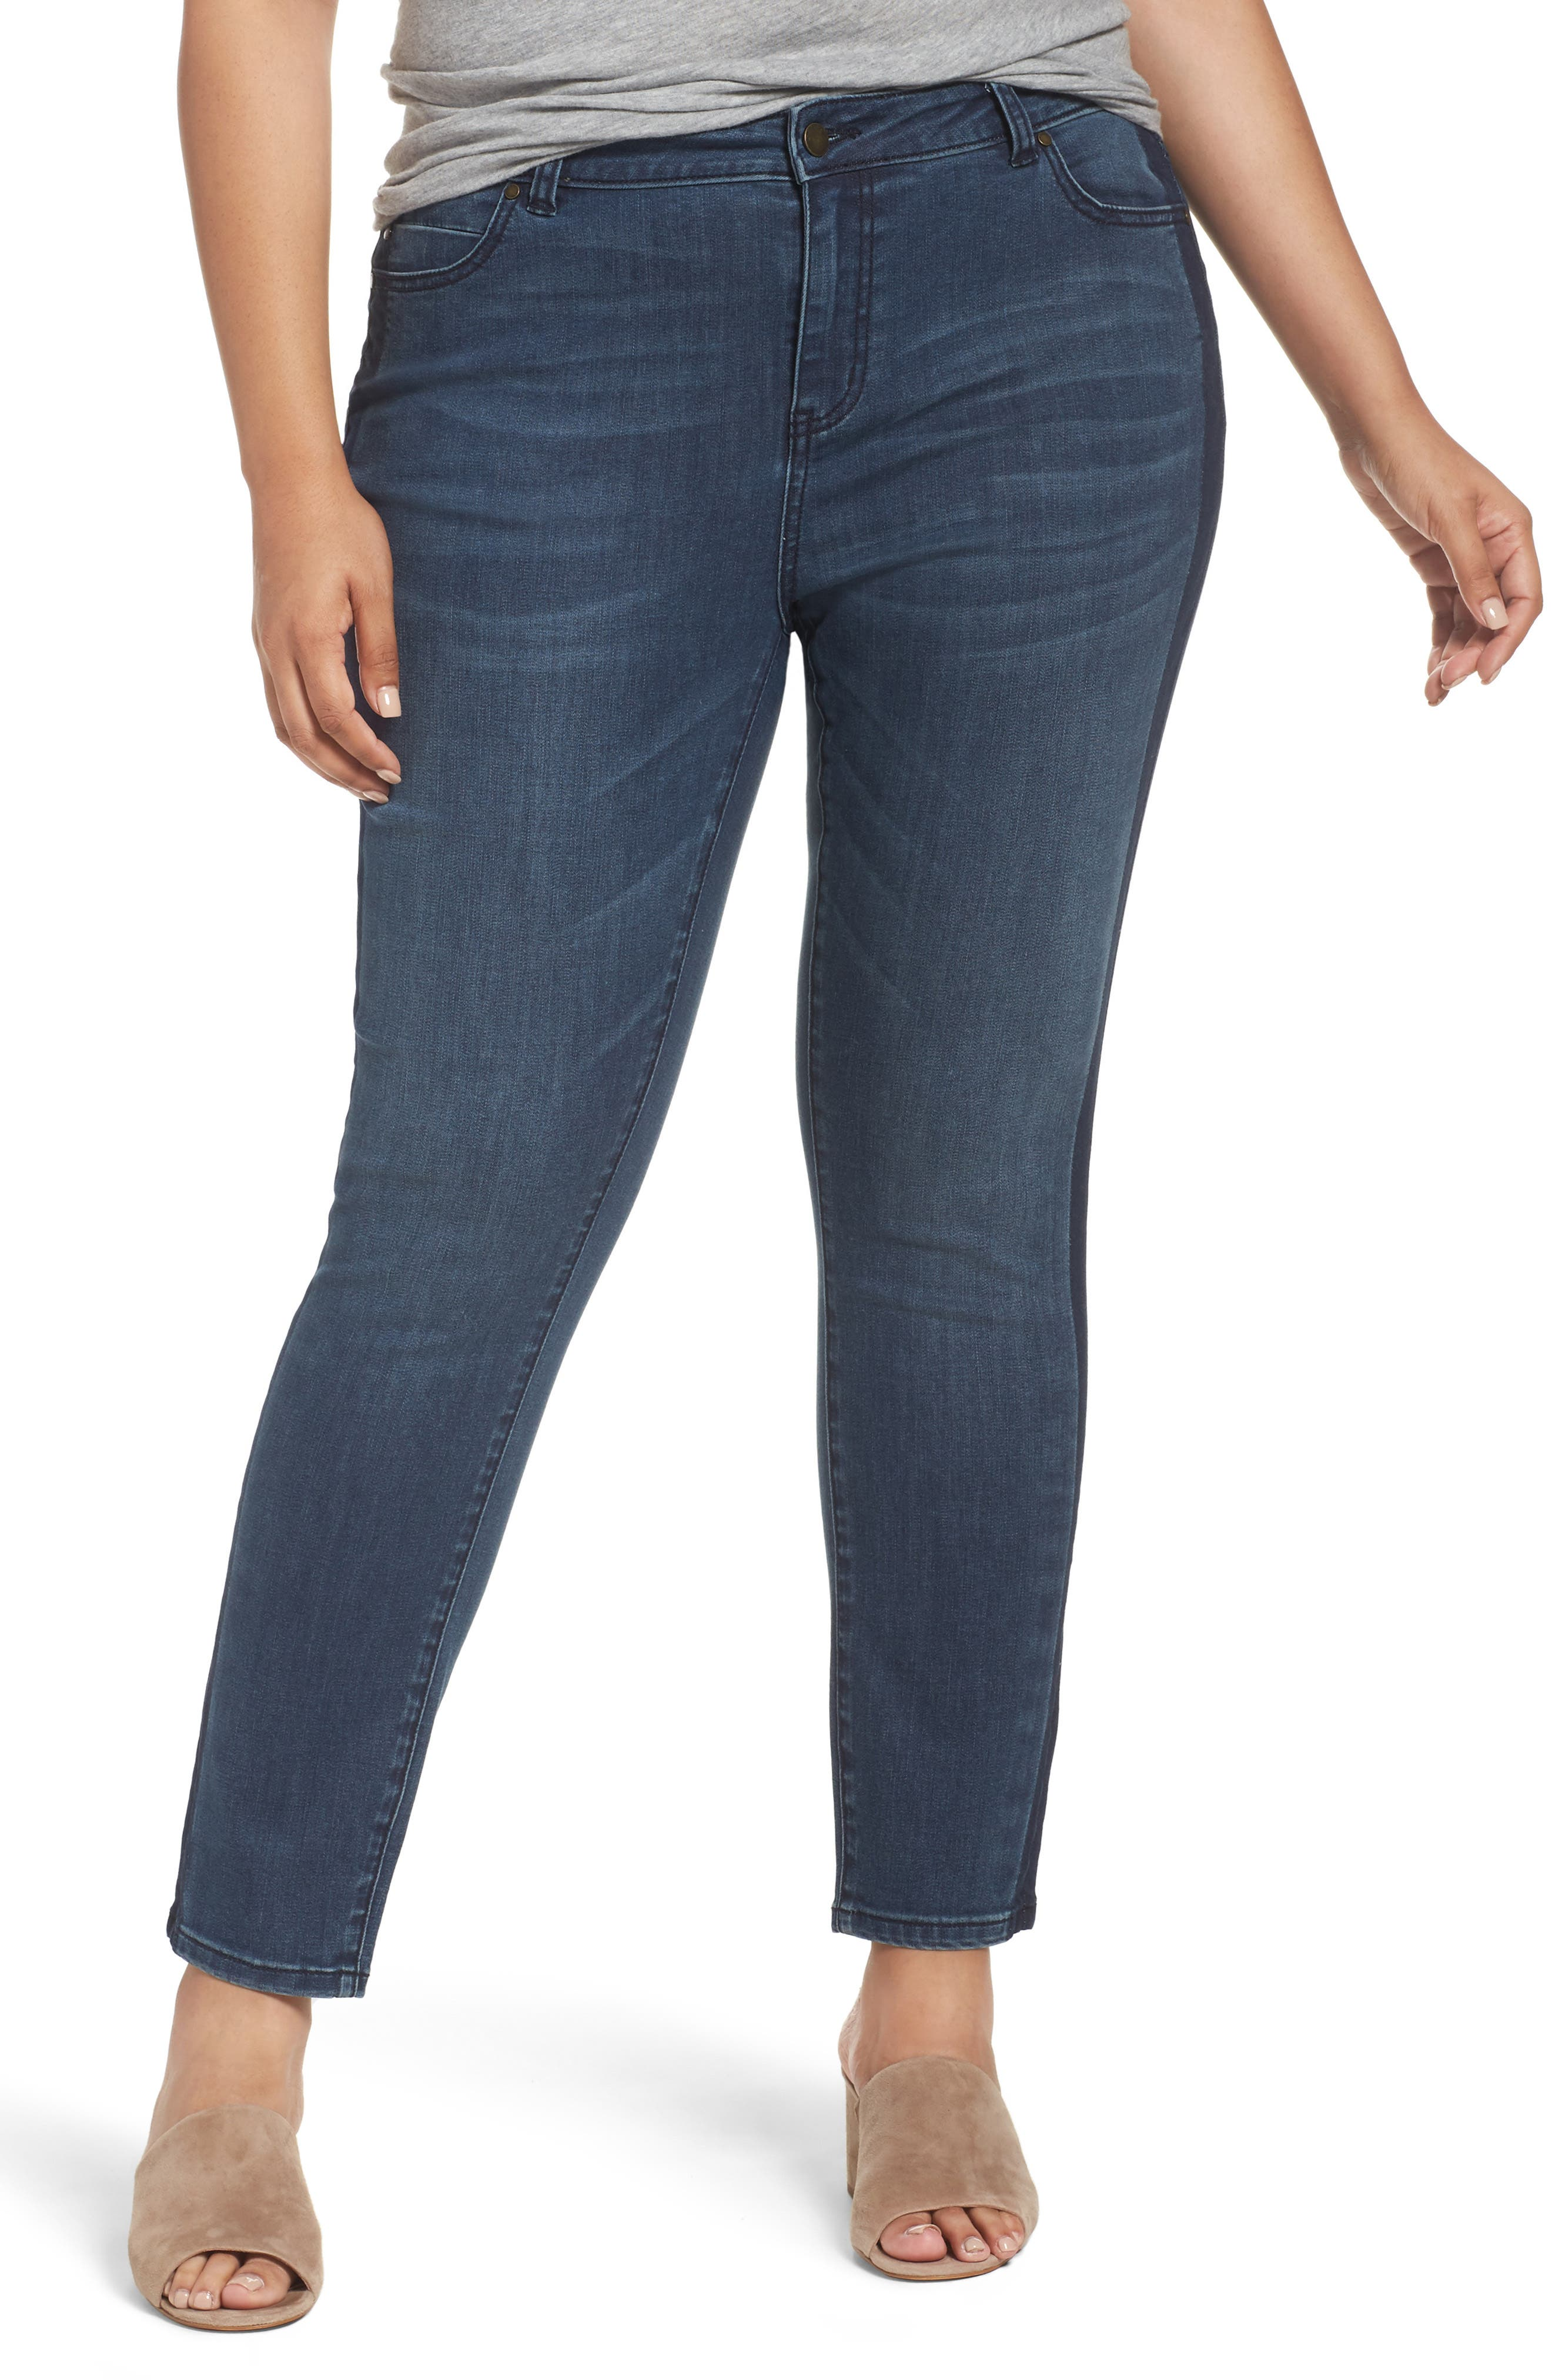 Main Image - Caslon® Side Panel Skinny Ankle Jeans (Blue Amara) (Plus Size)